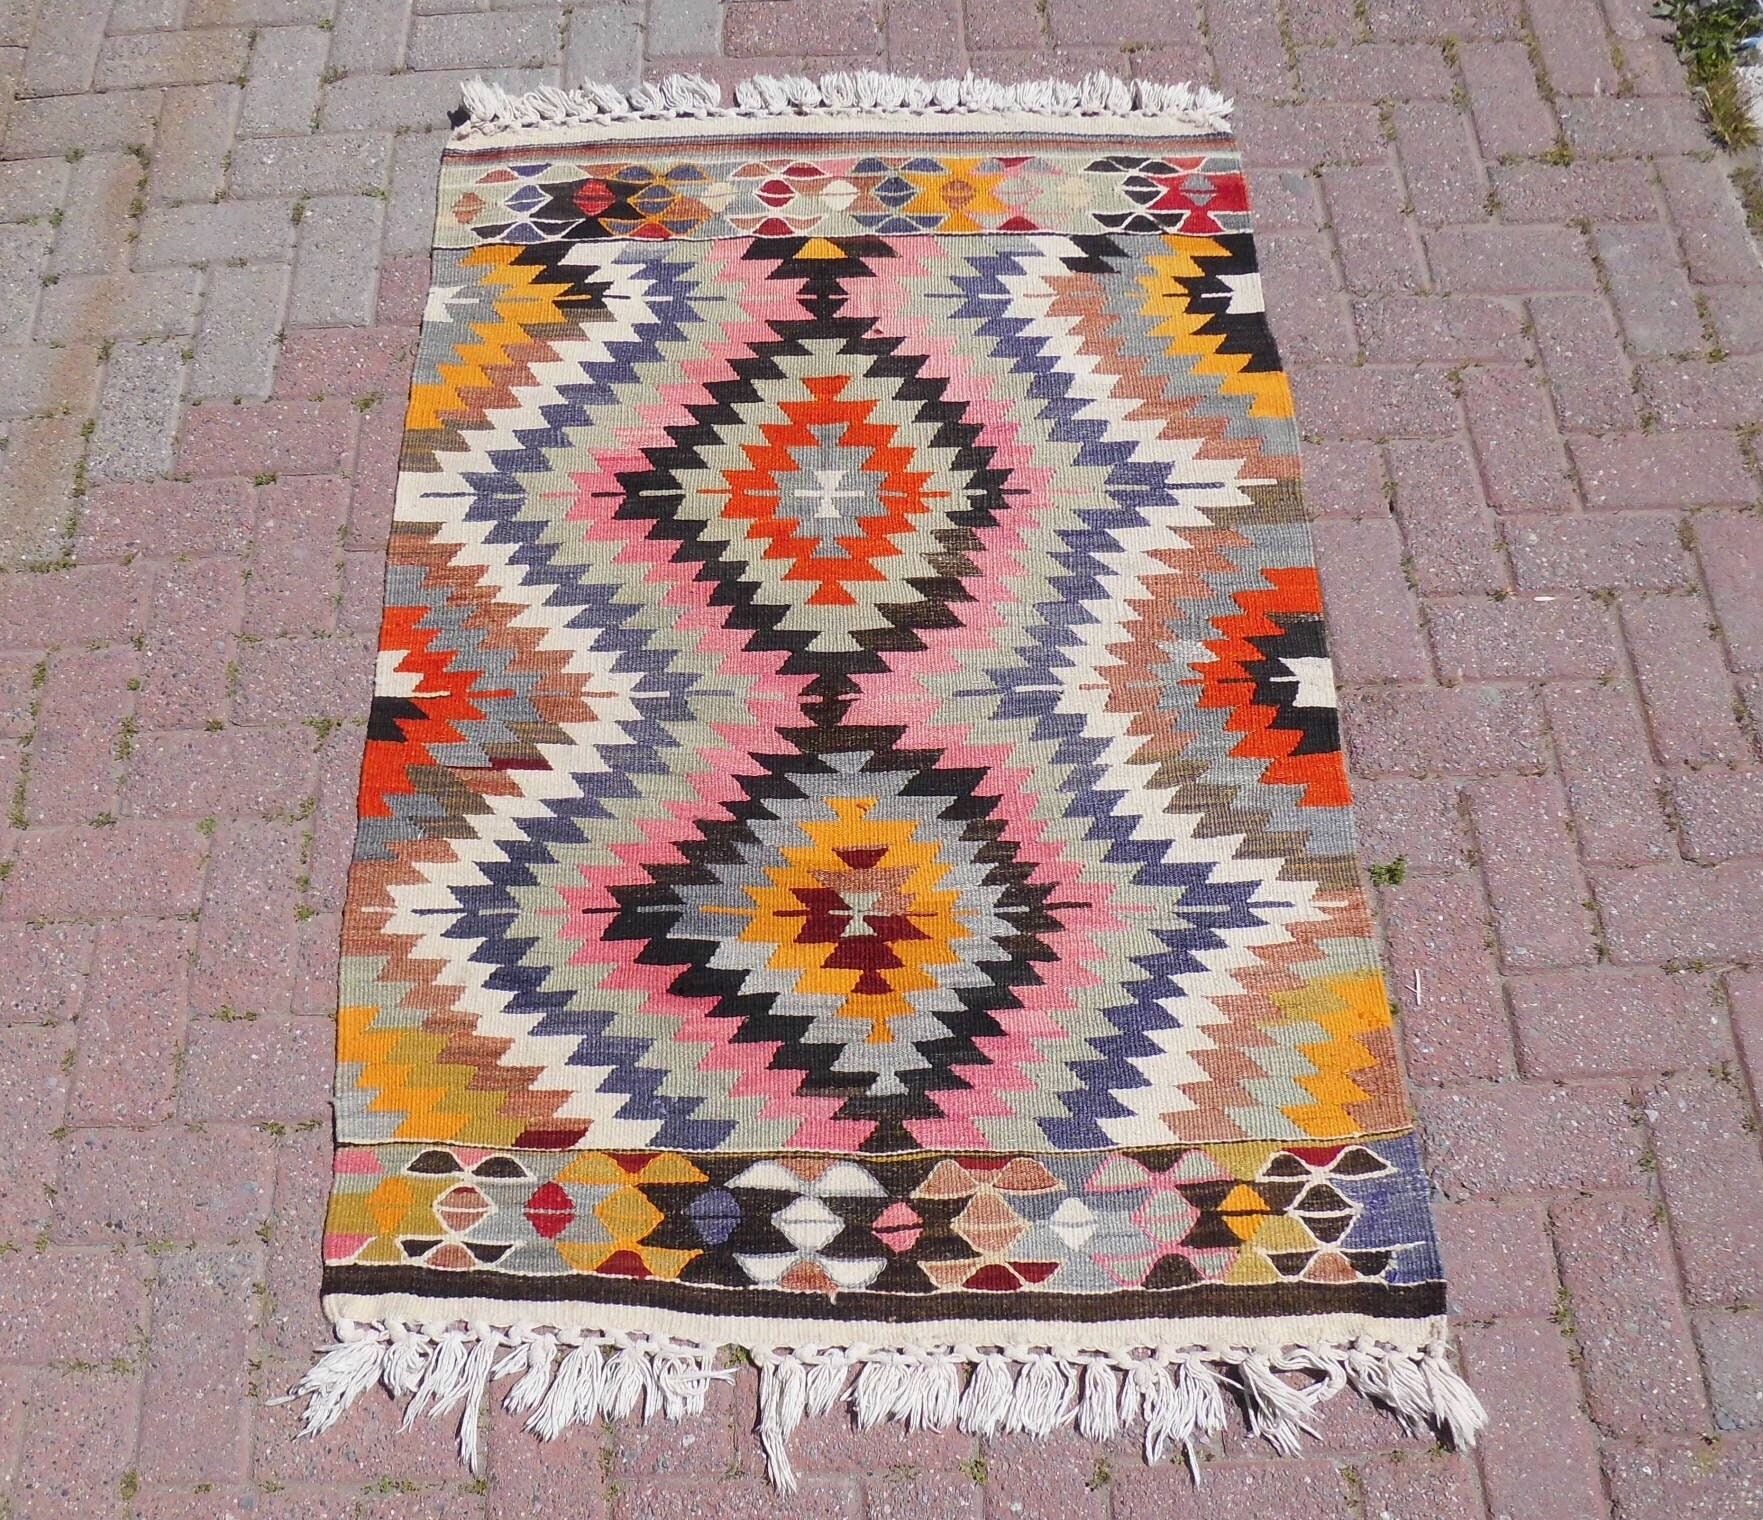 Vintage Turkish Kilim Rug Rugs Area Rug Home Decor Vintage